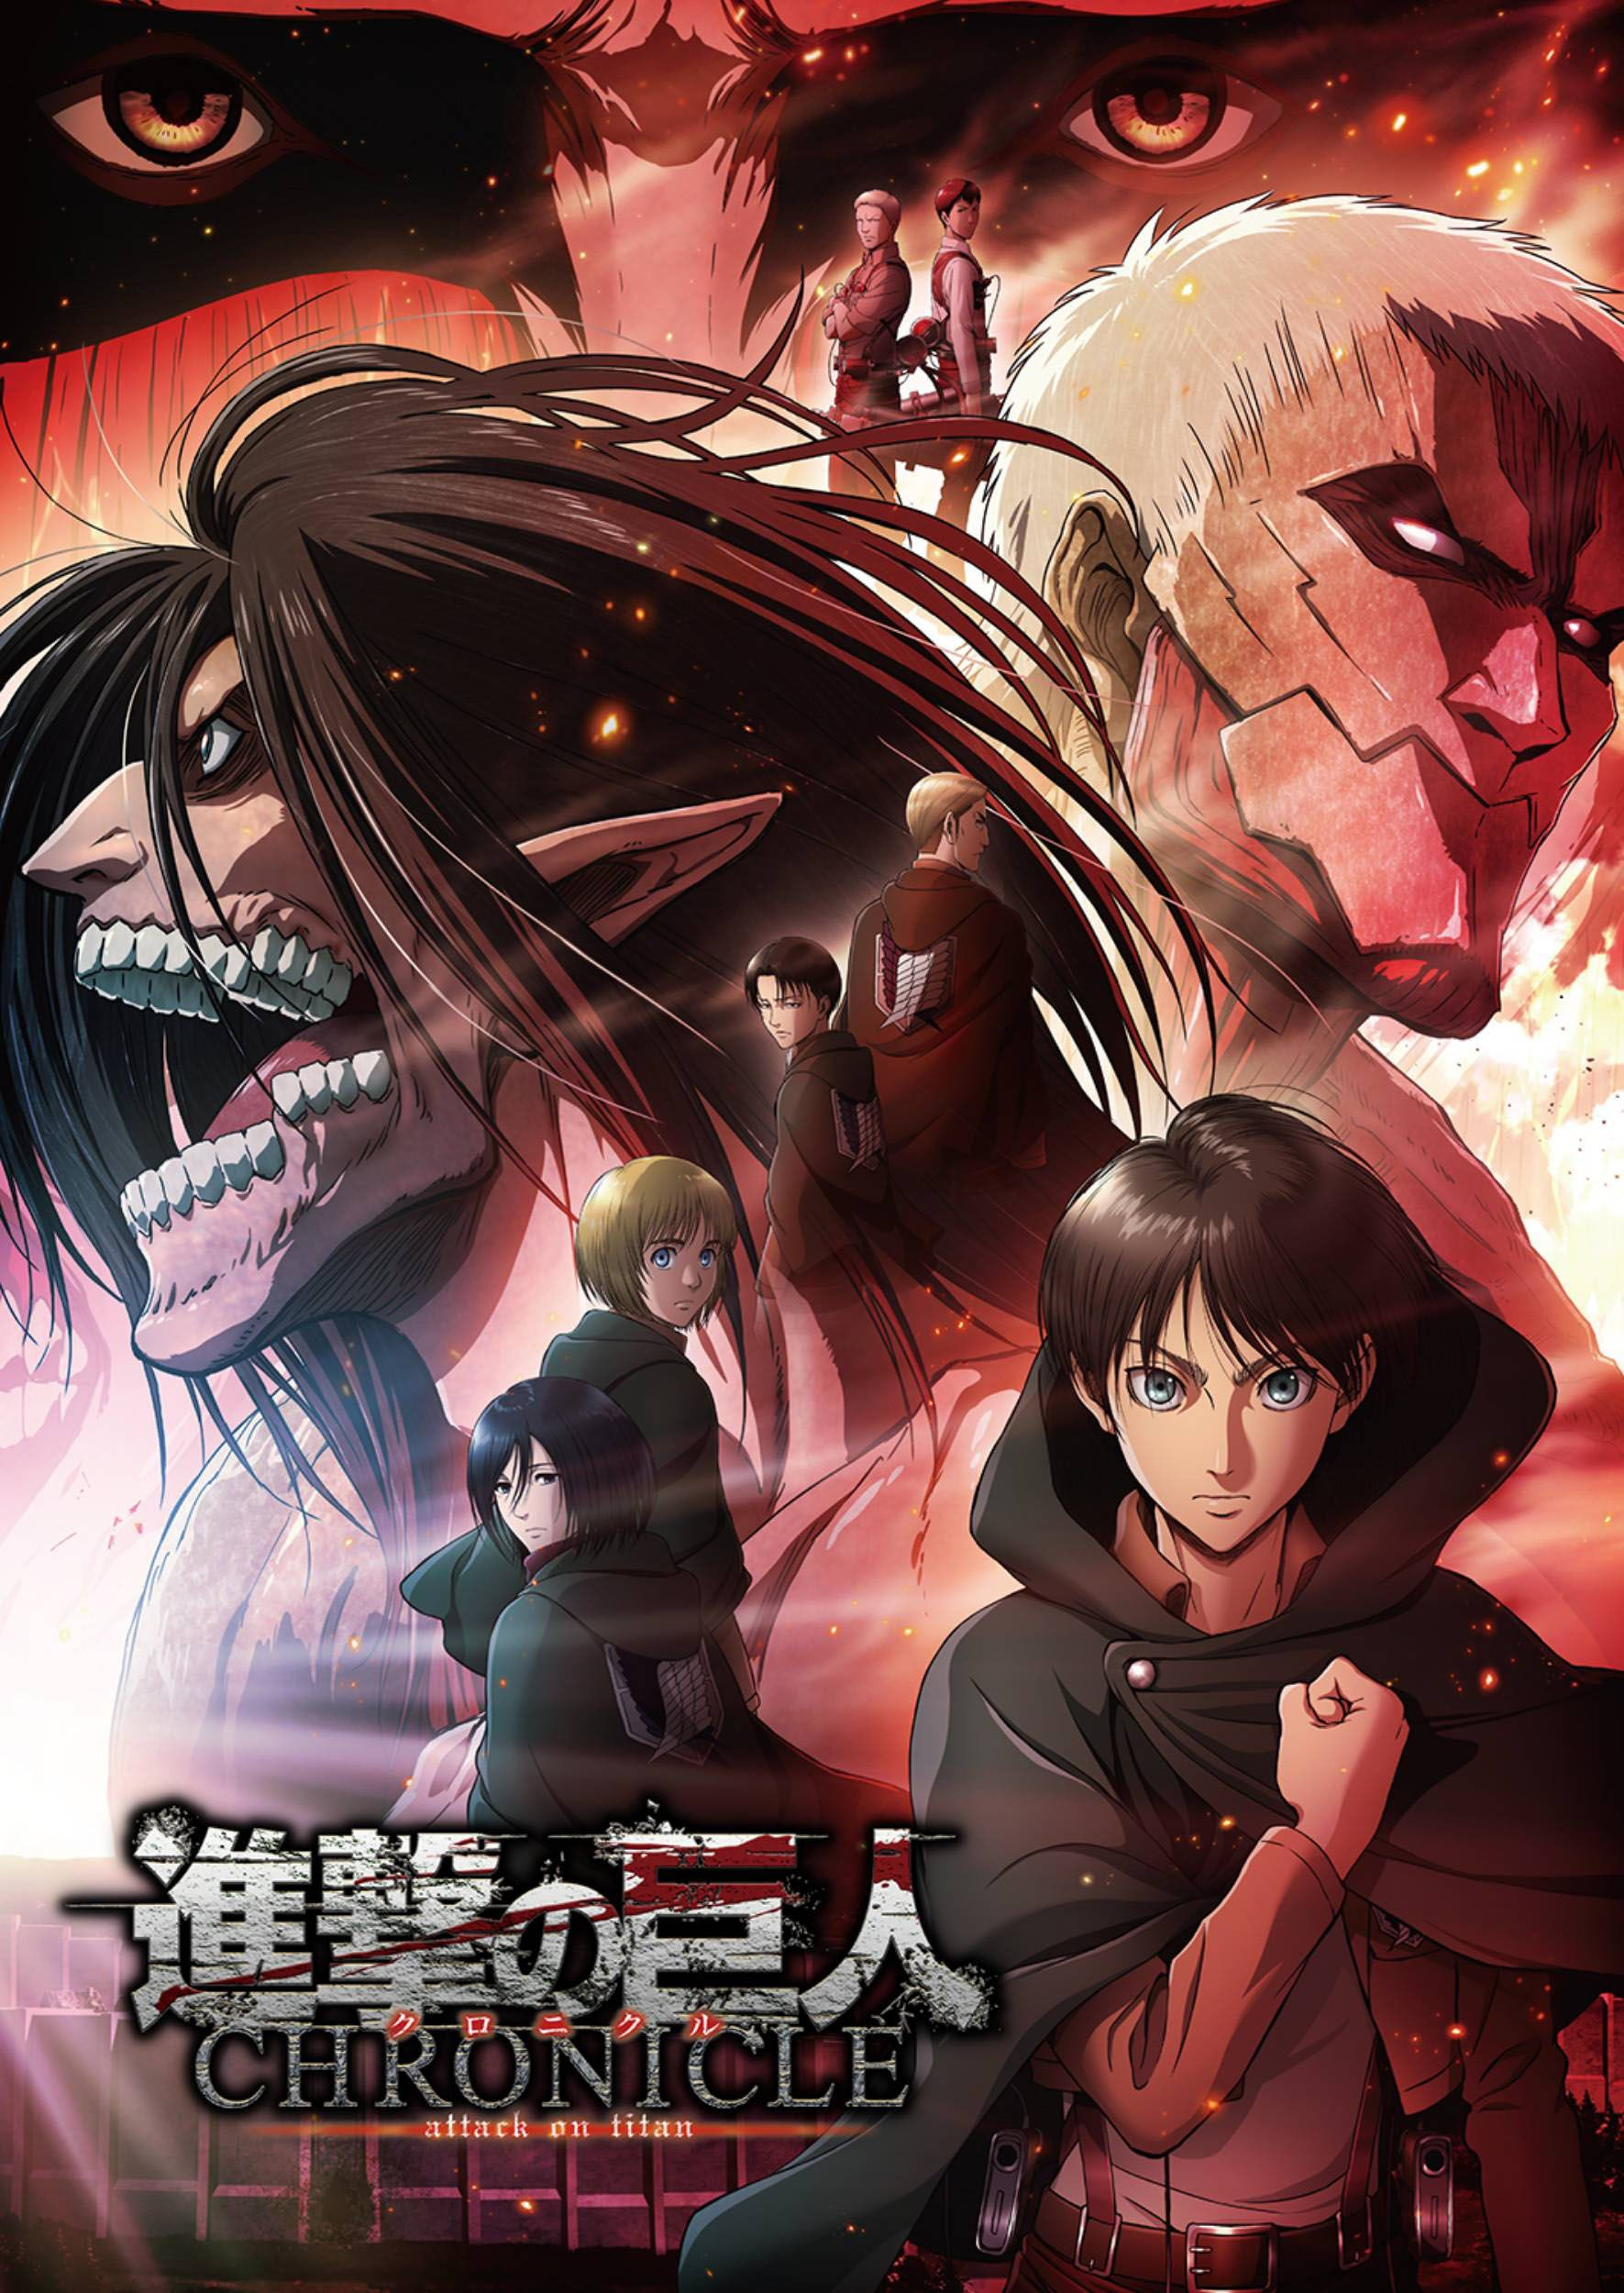 Attack On Titan Chronicle Attack On Titan Wiki Fandom